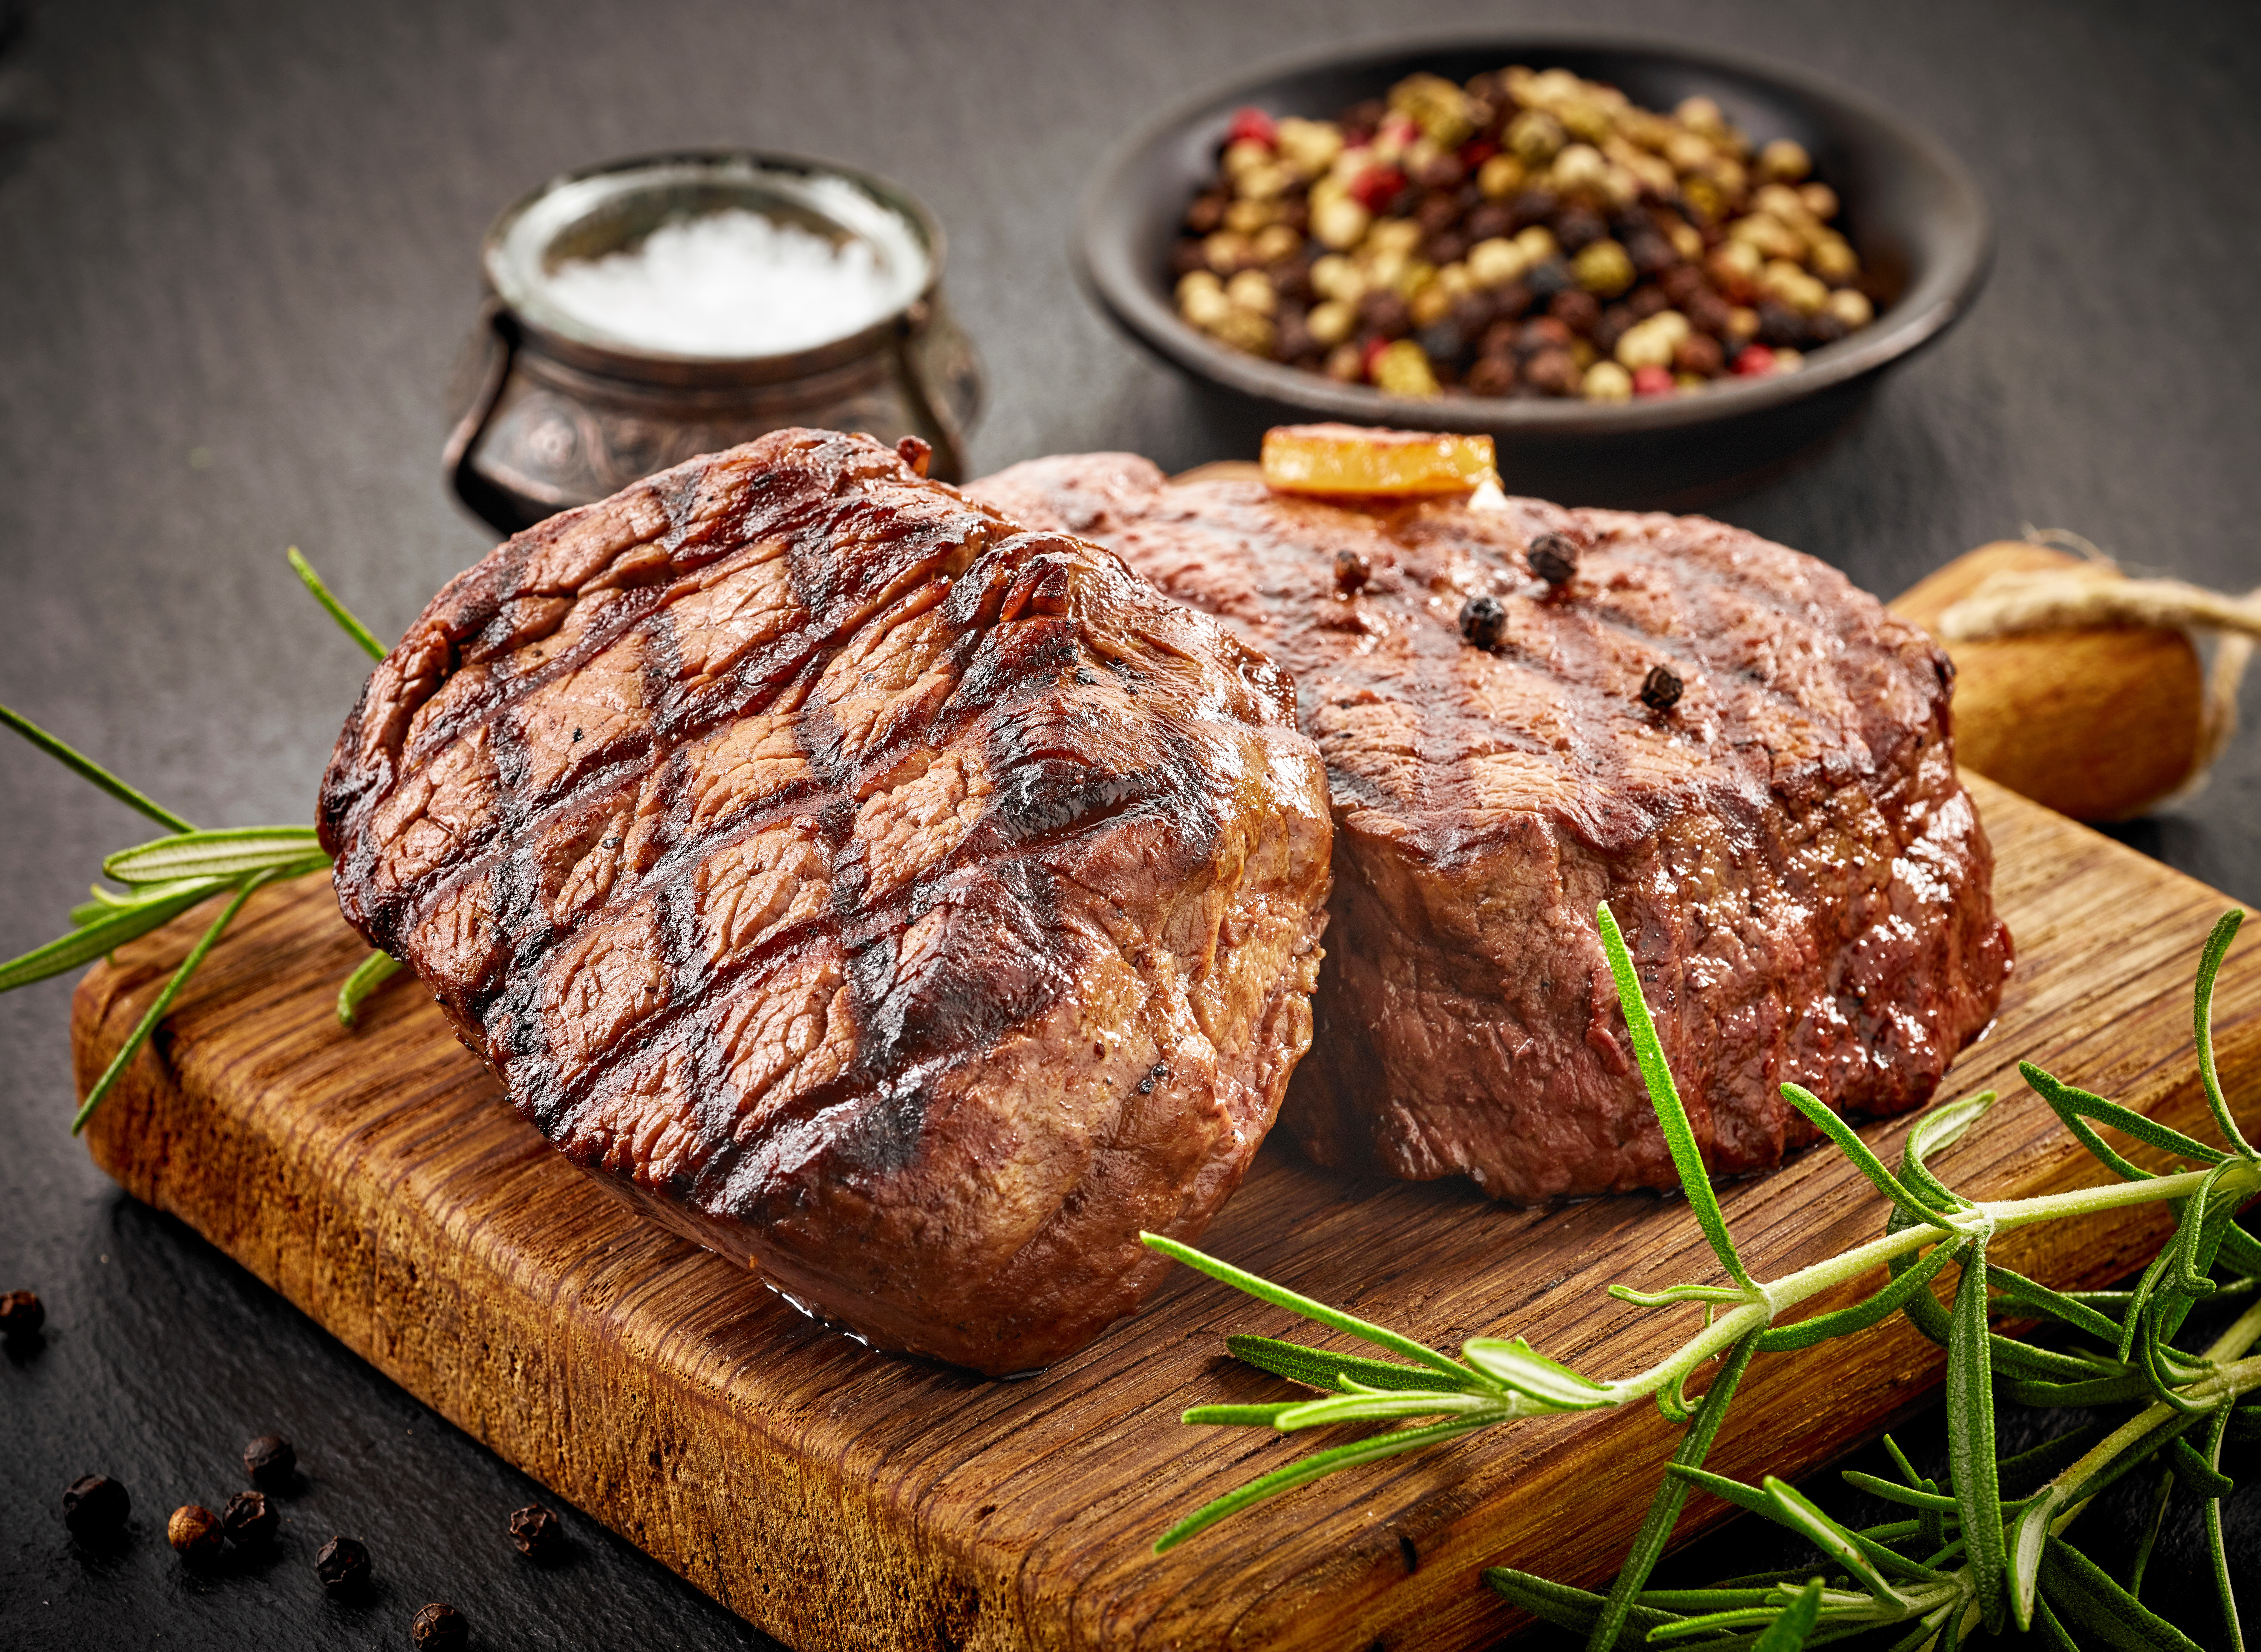 typical nutrient profile for sirloin steak | healthy eating | sf gate